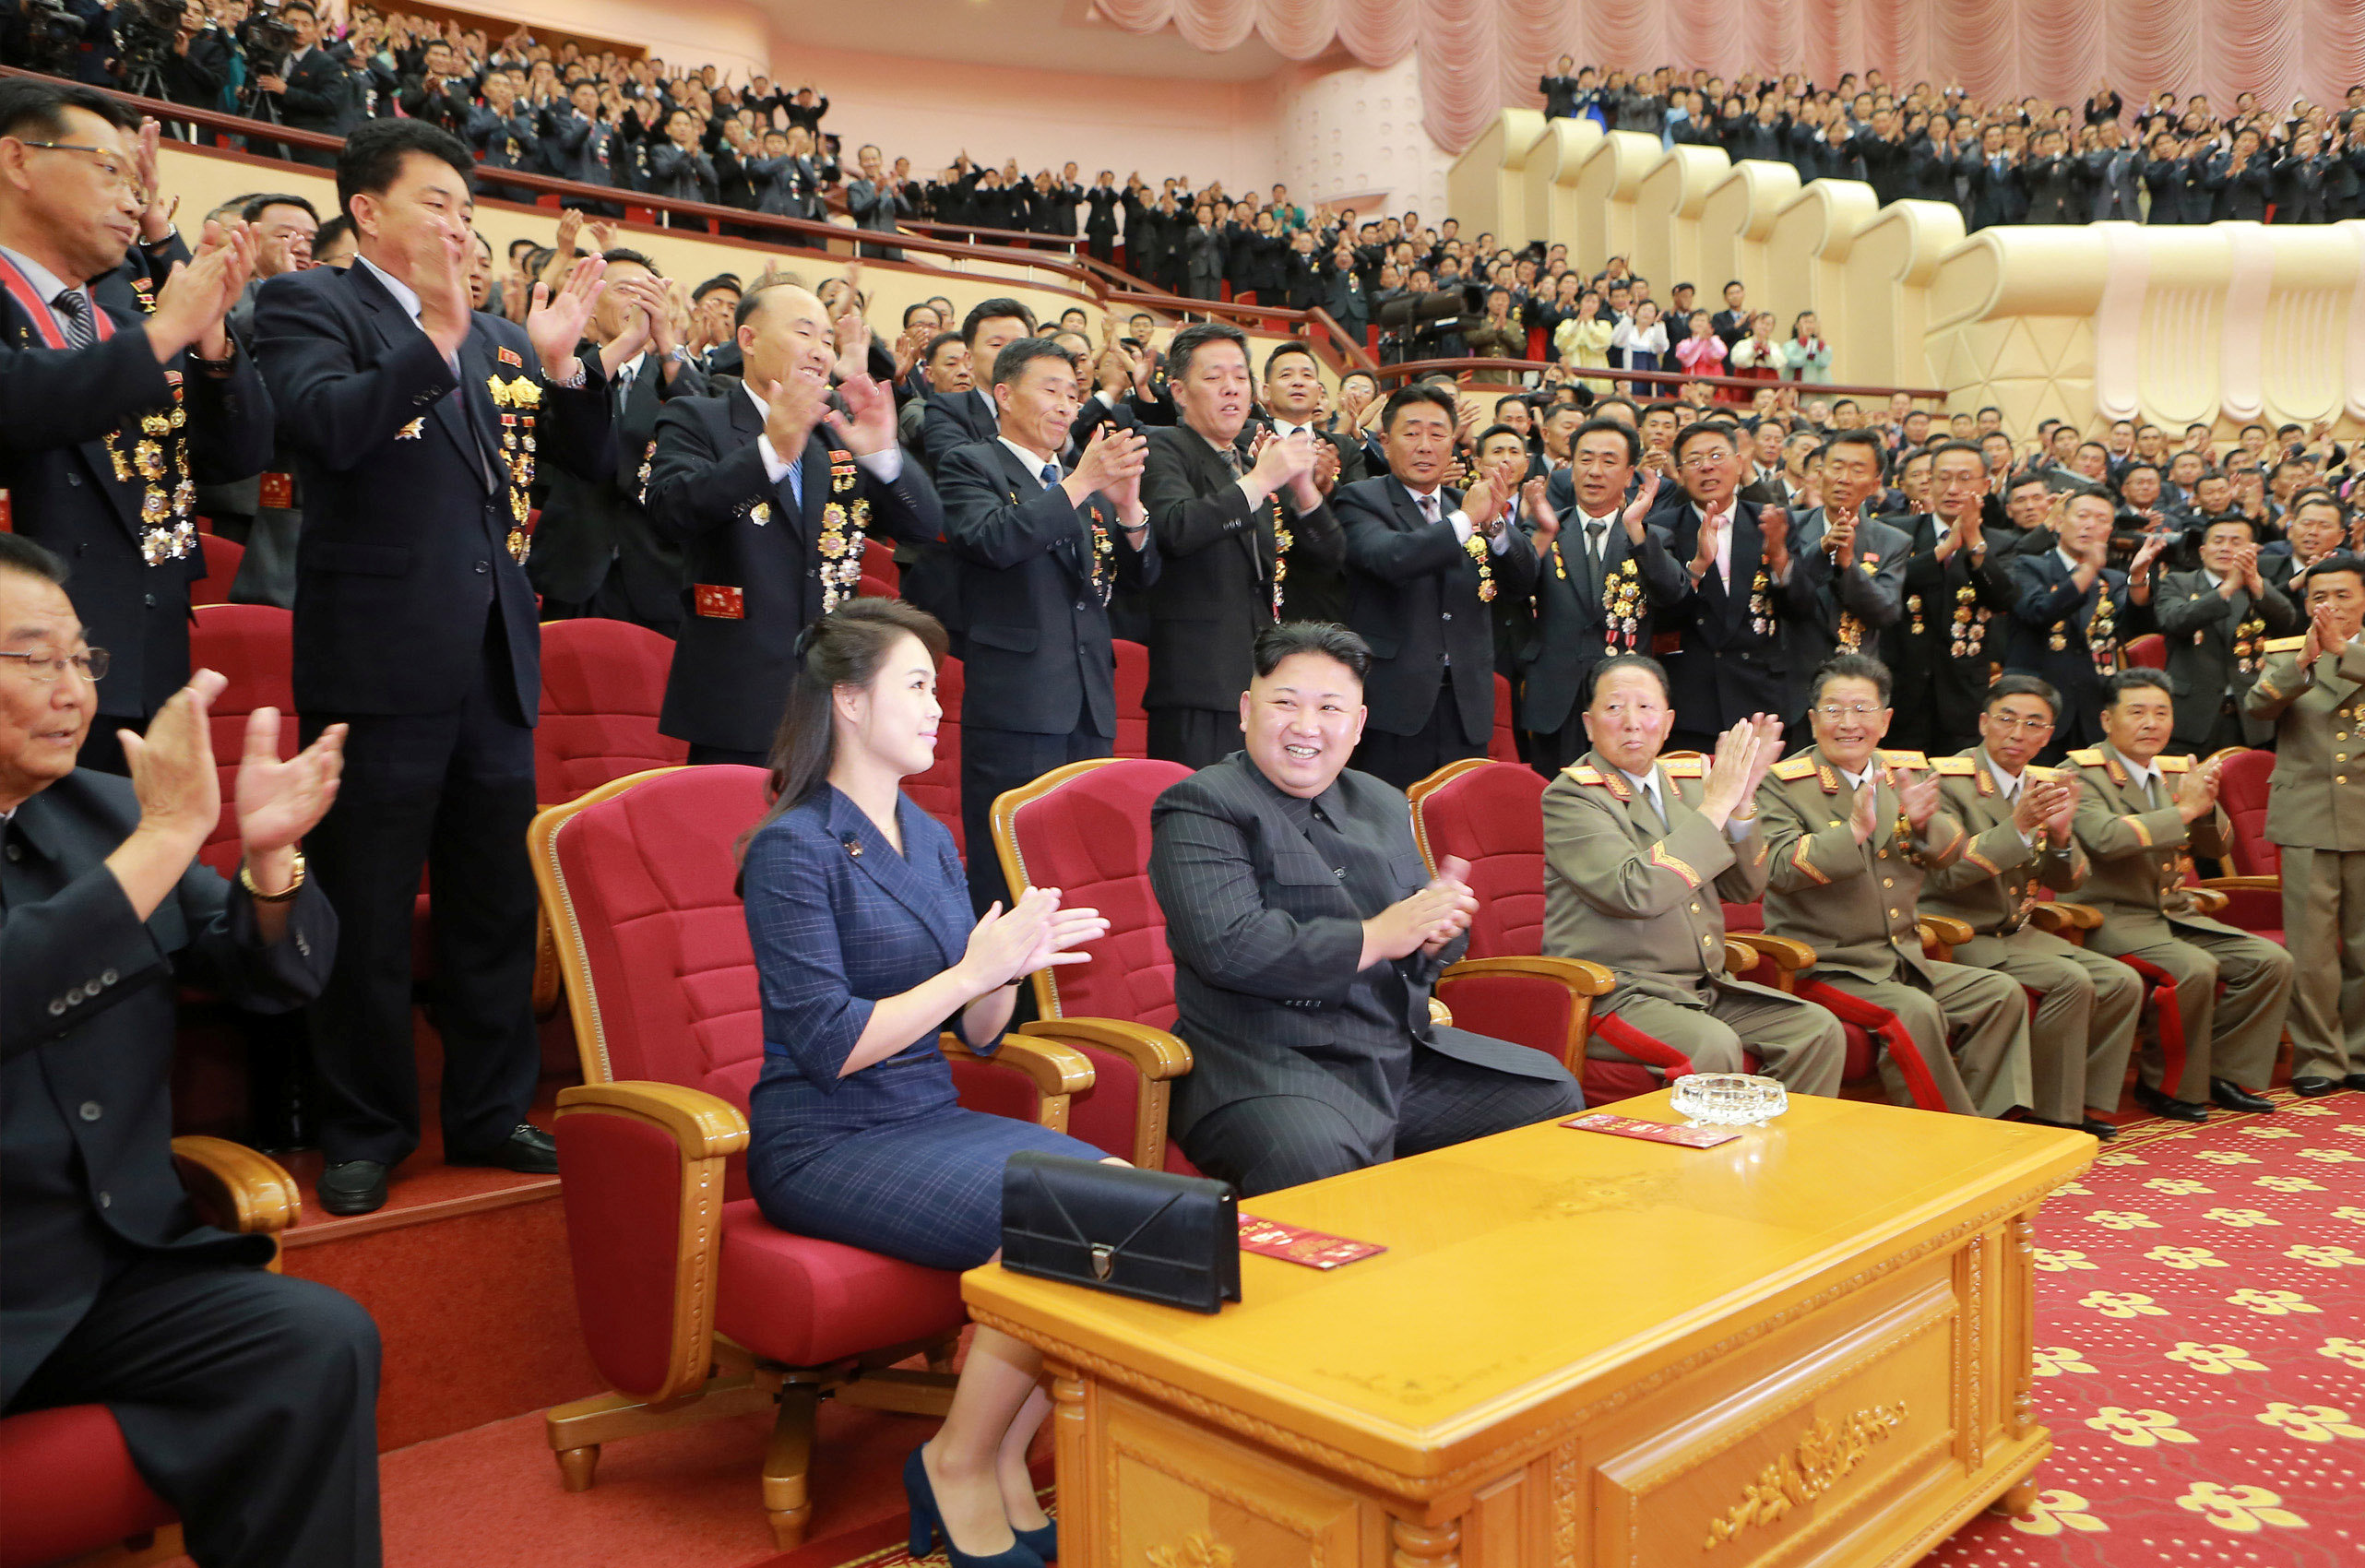 North Korean leader Kim Jong Un claps during a celebration for nuclear scientists and engineers who contributed to a hydrogen bomb test, in this undated photo released by North Korea's Korean Central News Agency (KCNA) in Pyongyang on September 10, 2017.